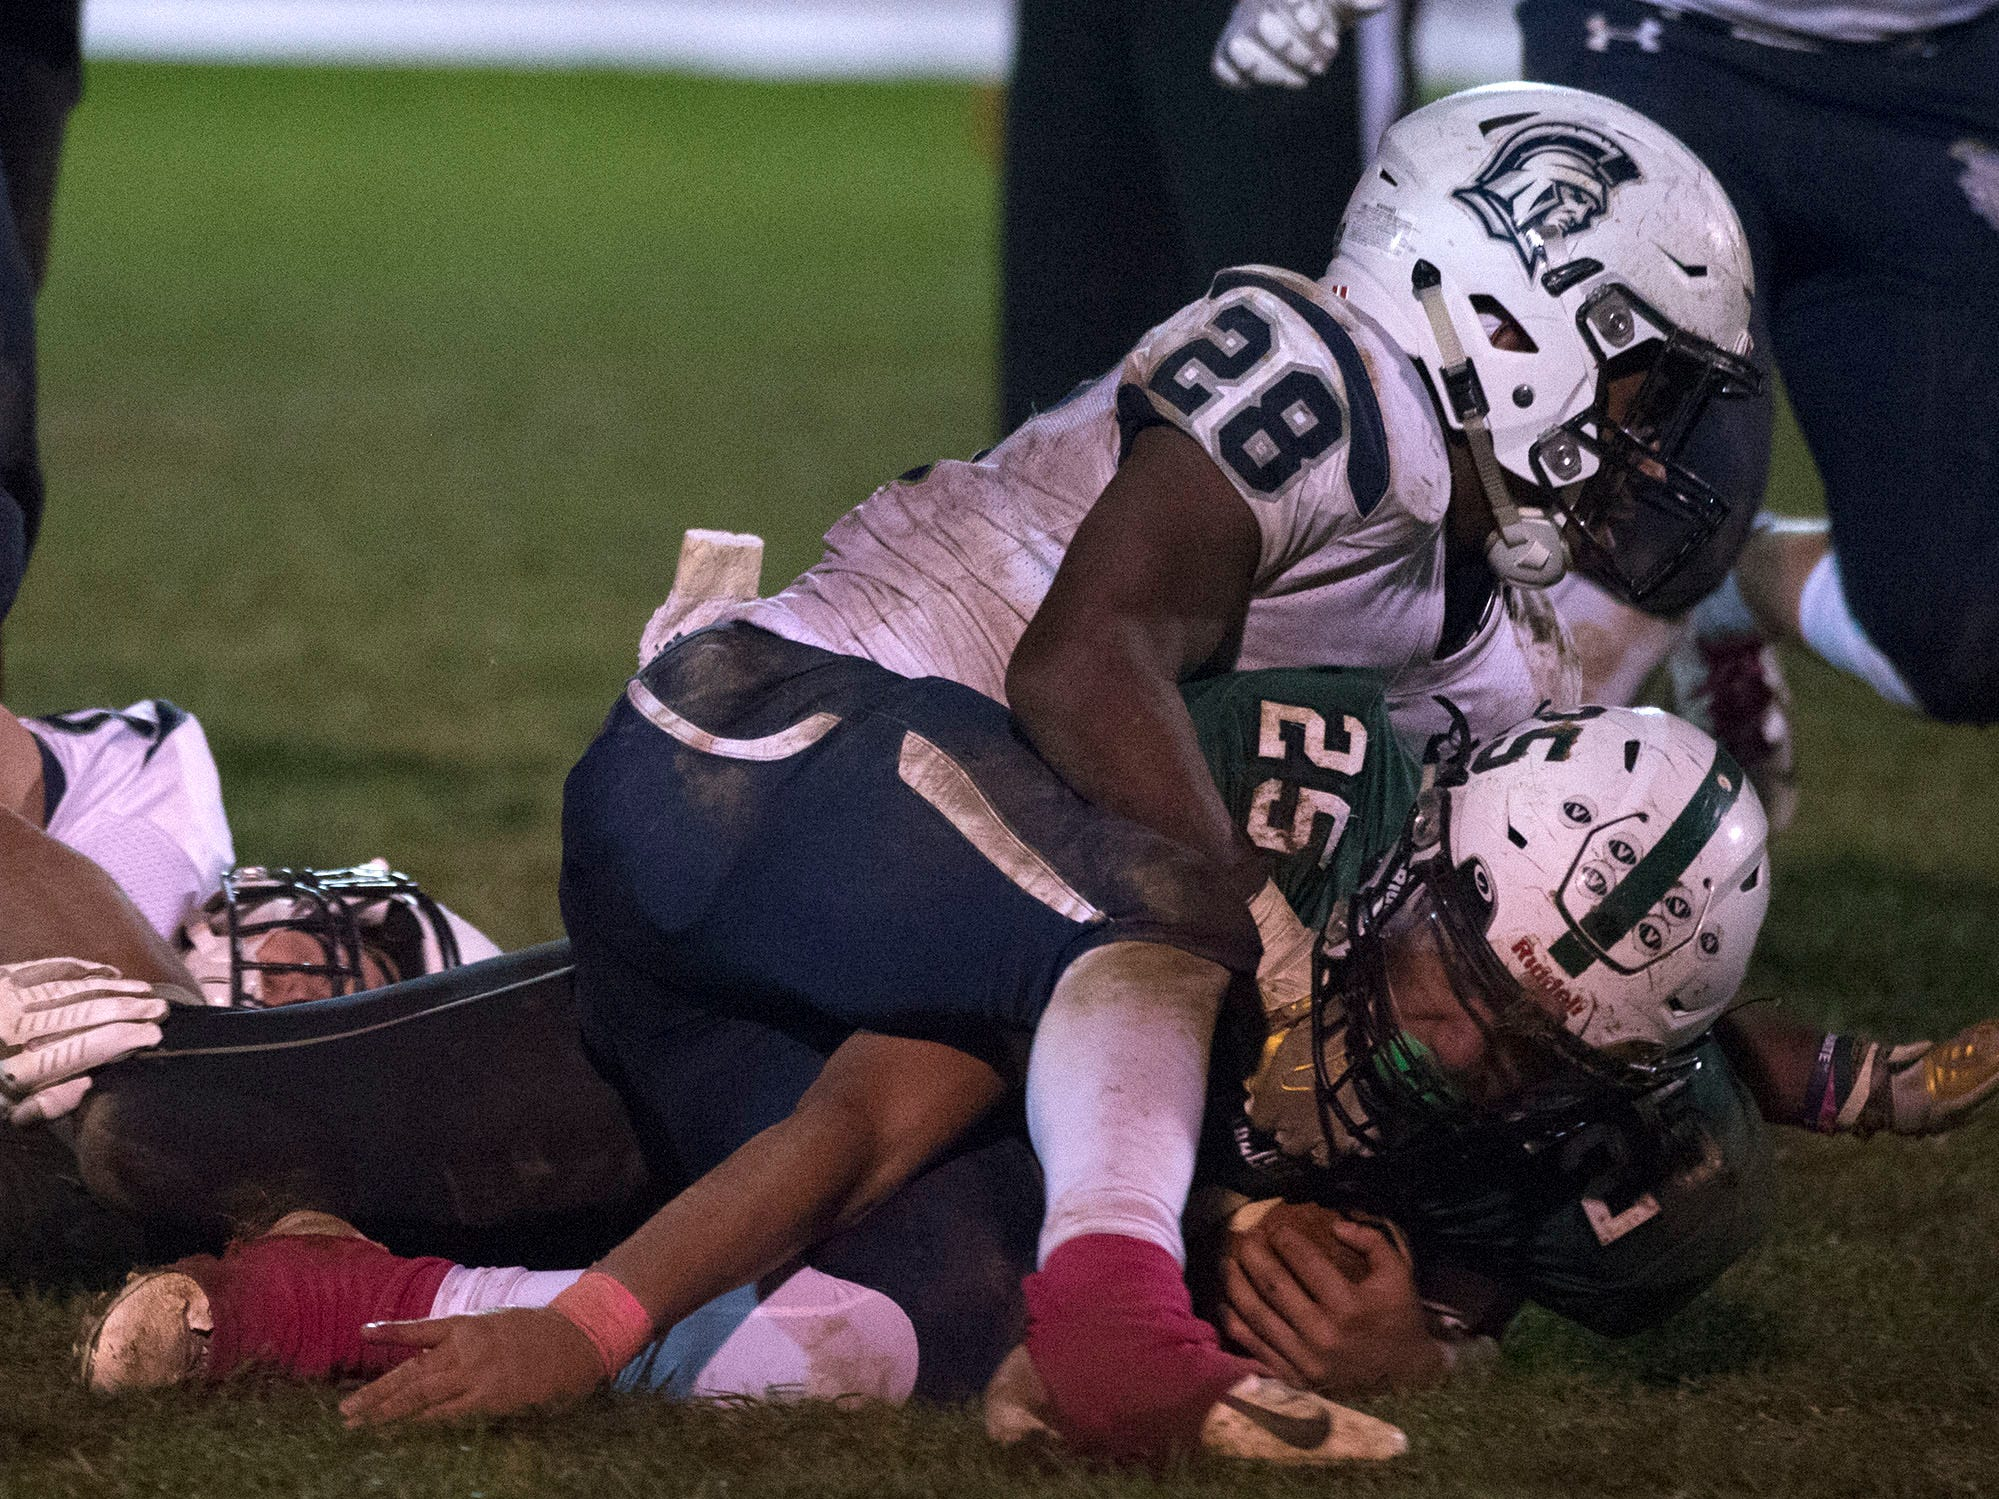 Chambersburg's Keyshawn Jones (28) makes a tackle on Carlisle's Wyatt Vioral (25) during a 26-20 Trojan victory on Friday, October 26, 2018..